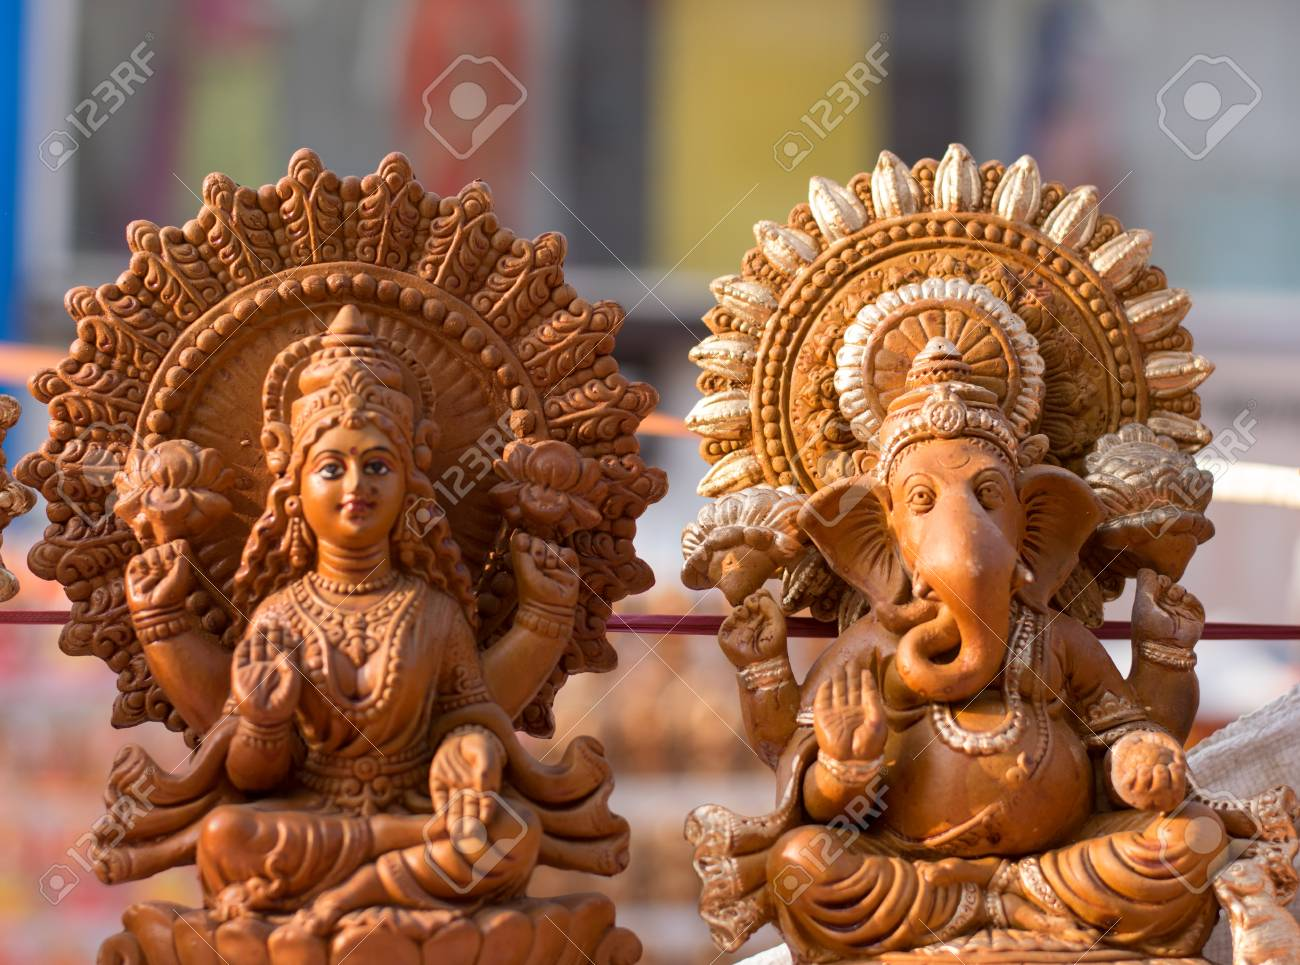 clay idols of laxmi and ganesh stock photo, picture and royalty free